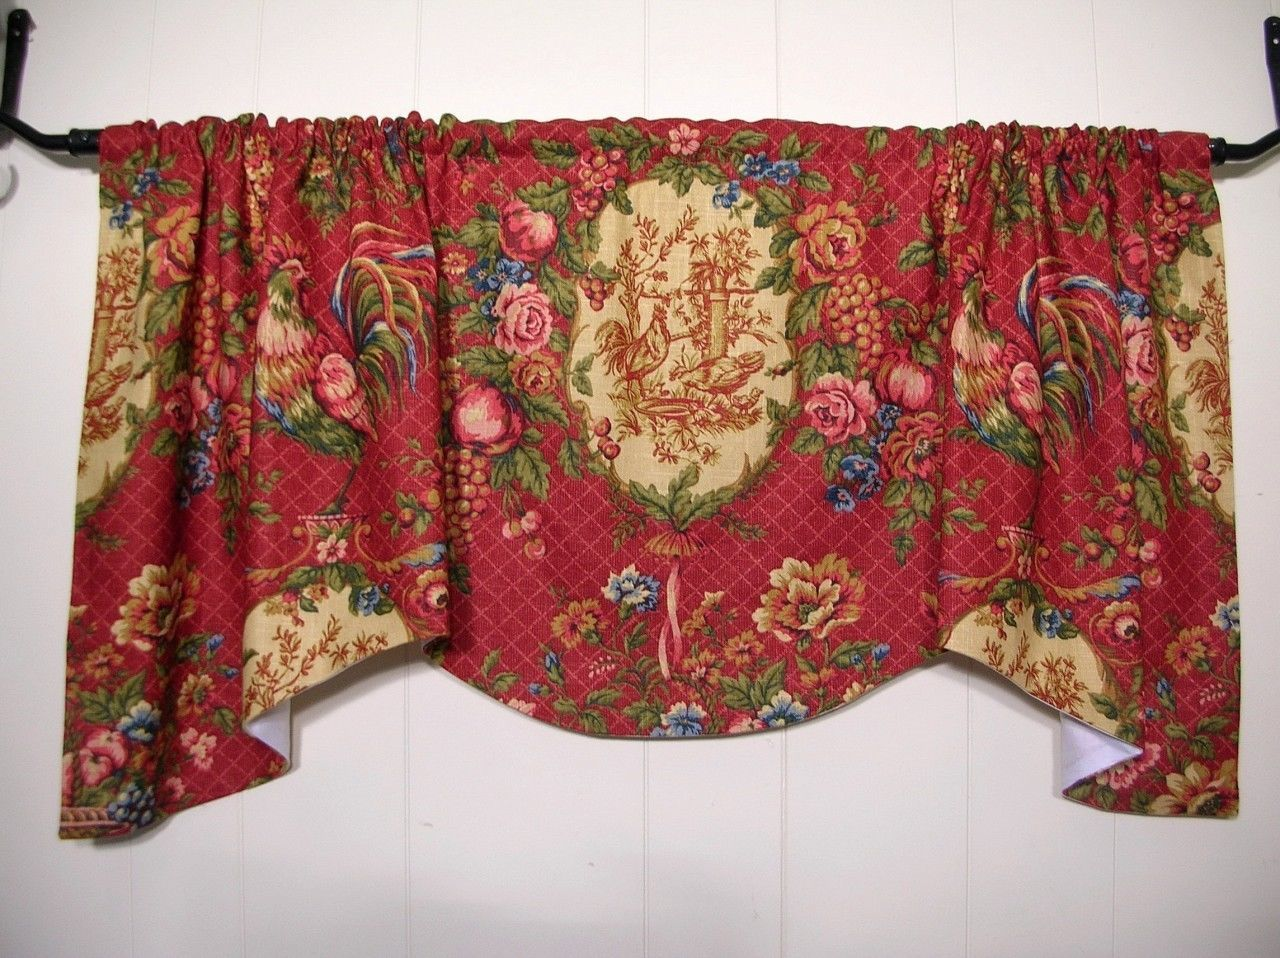 French country curtains waverly - Waverly Saison De Printempts Red Rooster Toile Valance Comforting Cottage Ebay